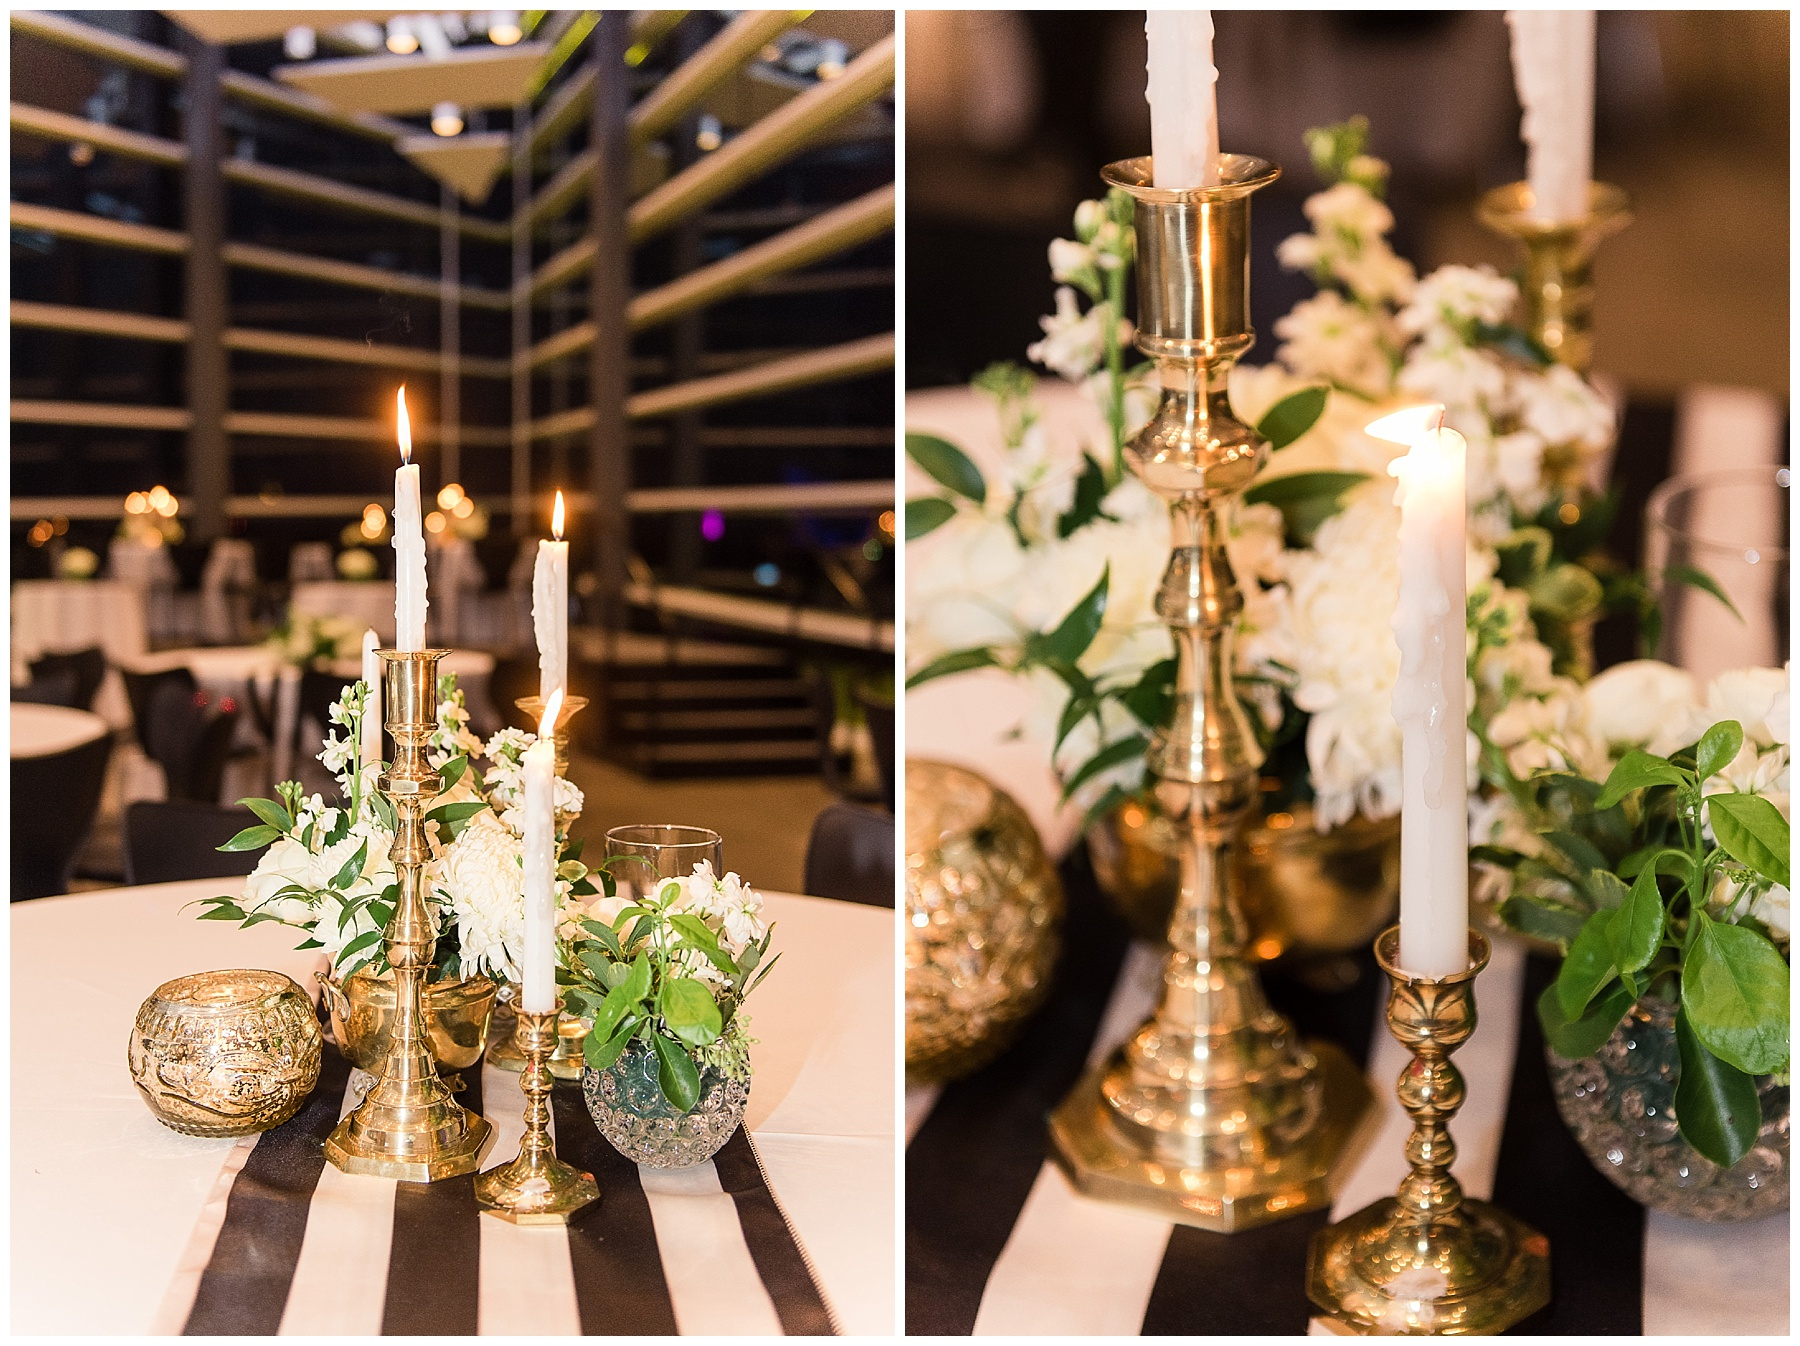 lydia royce, christ the king catholic church, CHK central boathouse, the bridal boutique, bridal maison by moe, men's wearhouse, borrowed charm events rentals and styling, rococo, oklahoma wedding, central oklahoma events, kate spade wedding